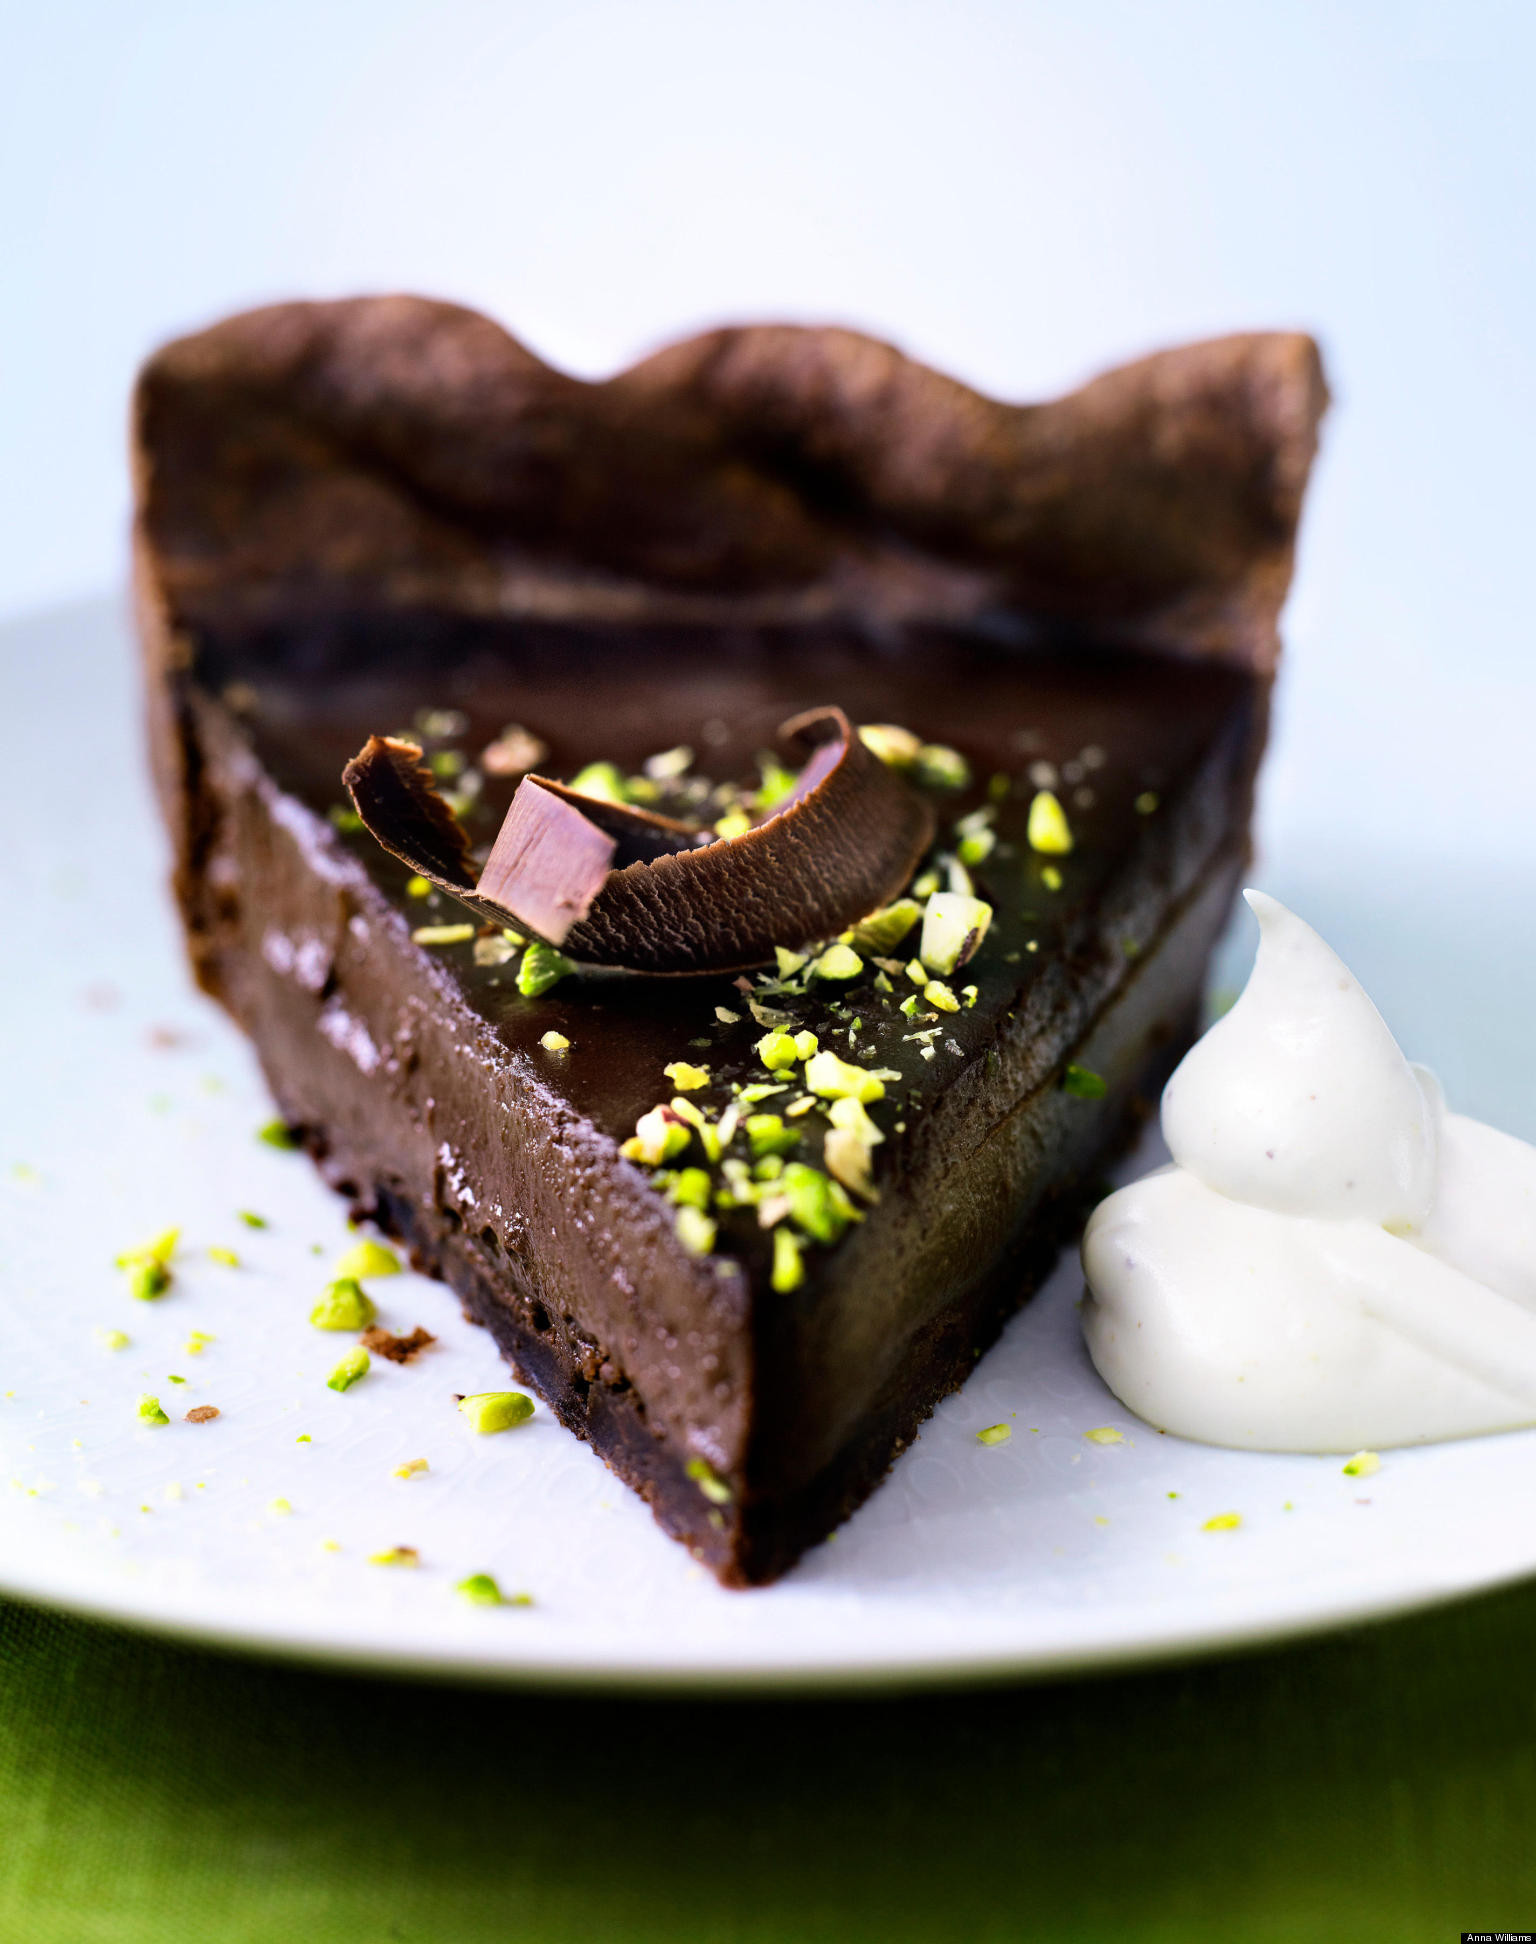 Chocolate Pudding Desserts  11 The Most Outrageous Chocolate Desserts EVER